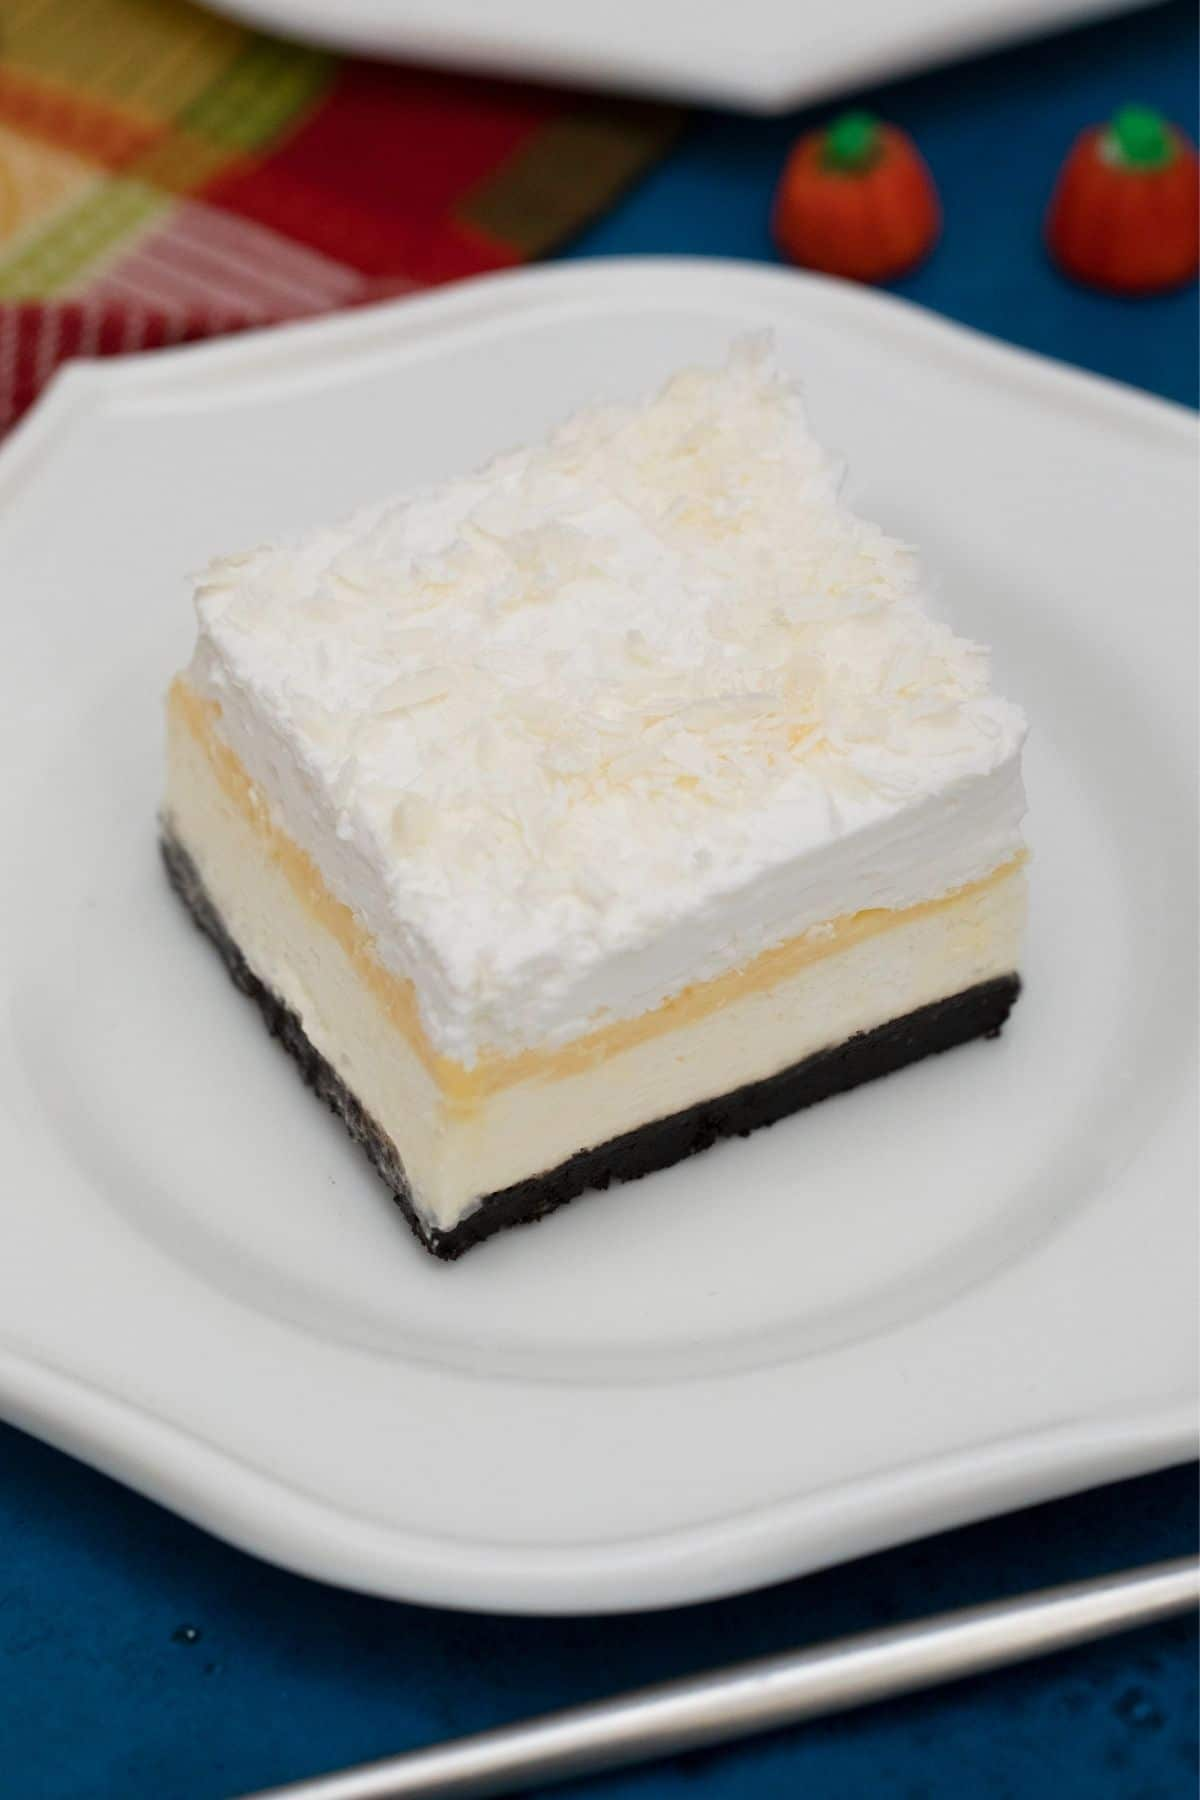 Slice of layered dessert on white plate sitting on blue table